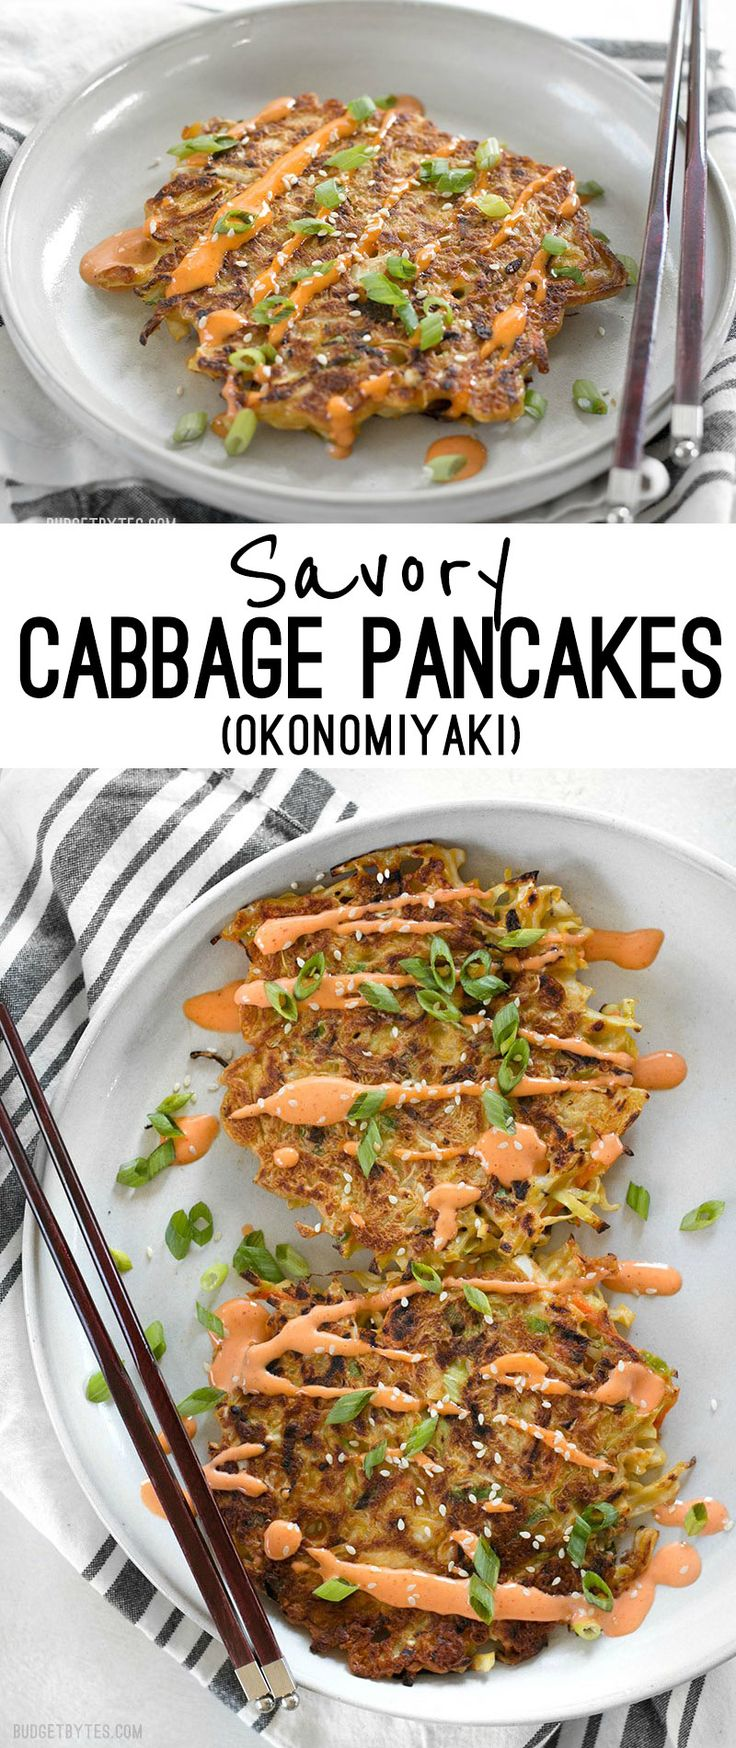 Savory Cabbage Pancakes are a fun and filling way to use up pantry leftovers…